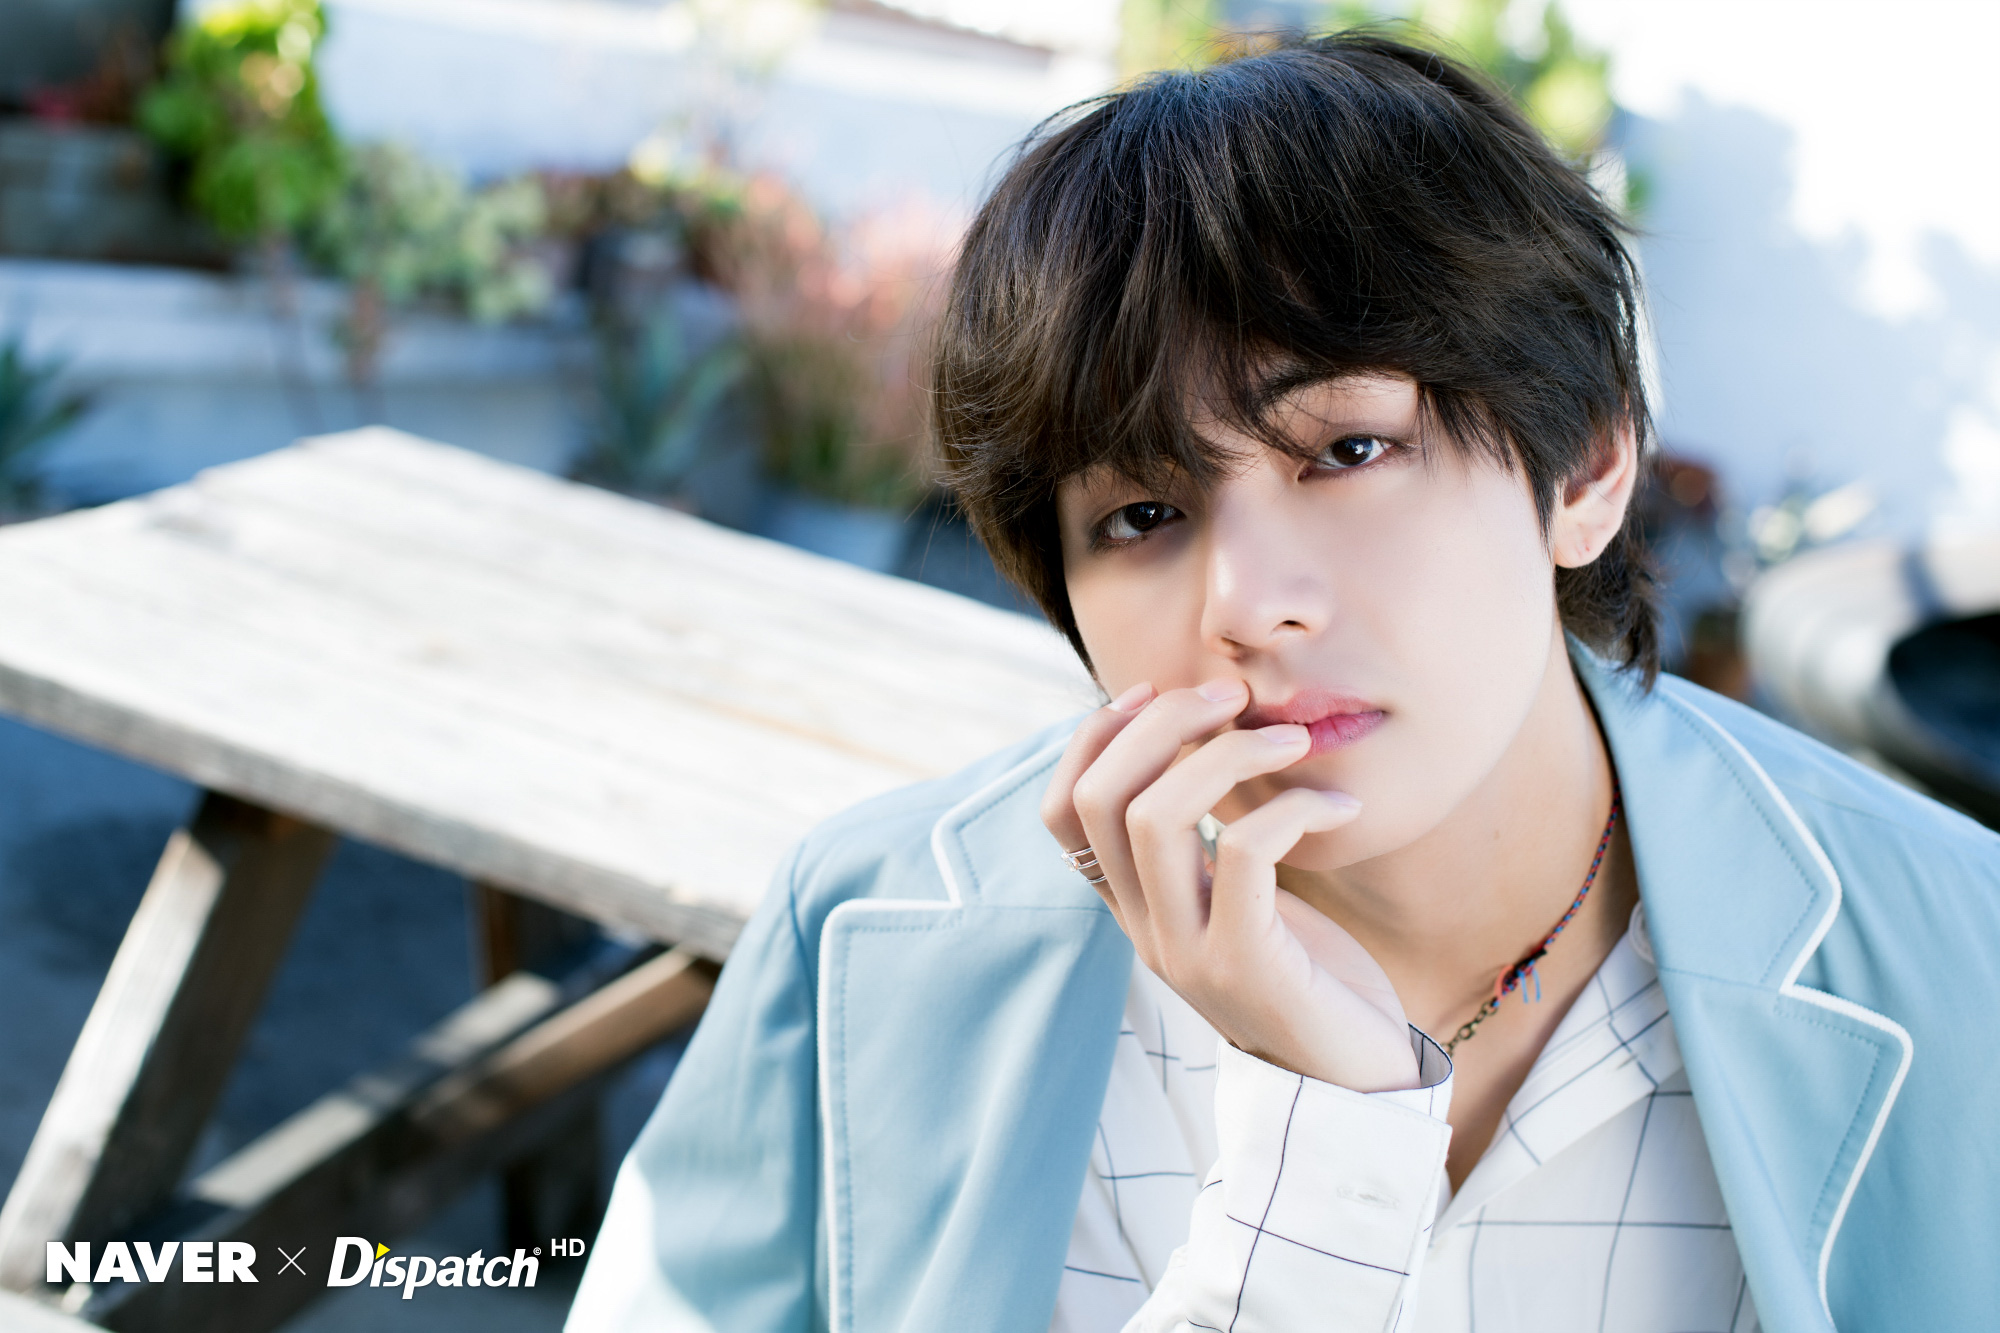 X DISPATCH FOR V ' 5TH ANNIVERSARY